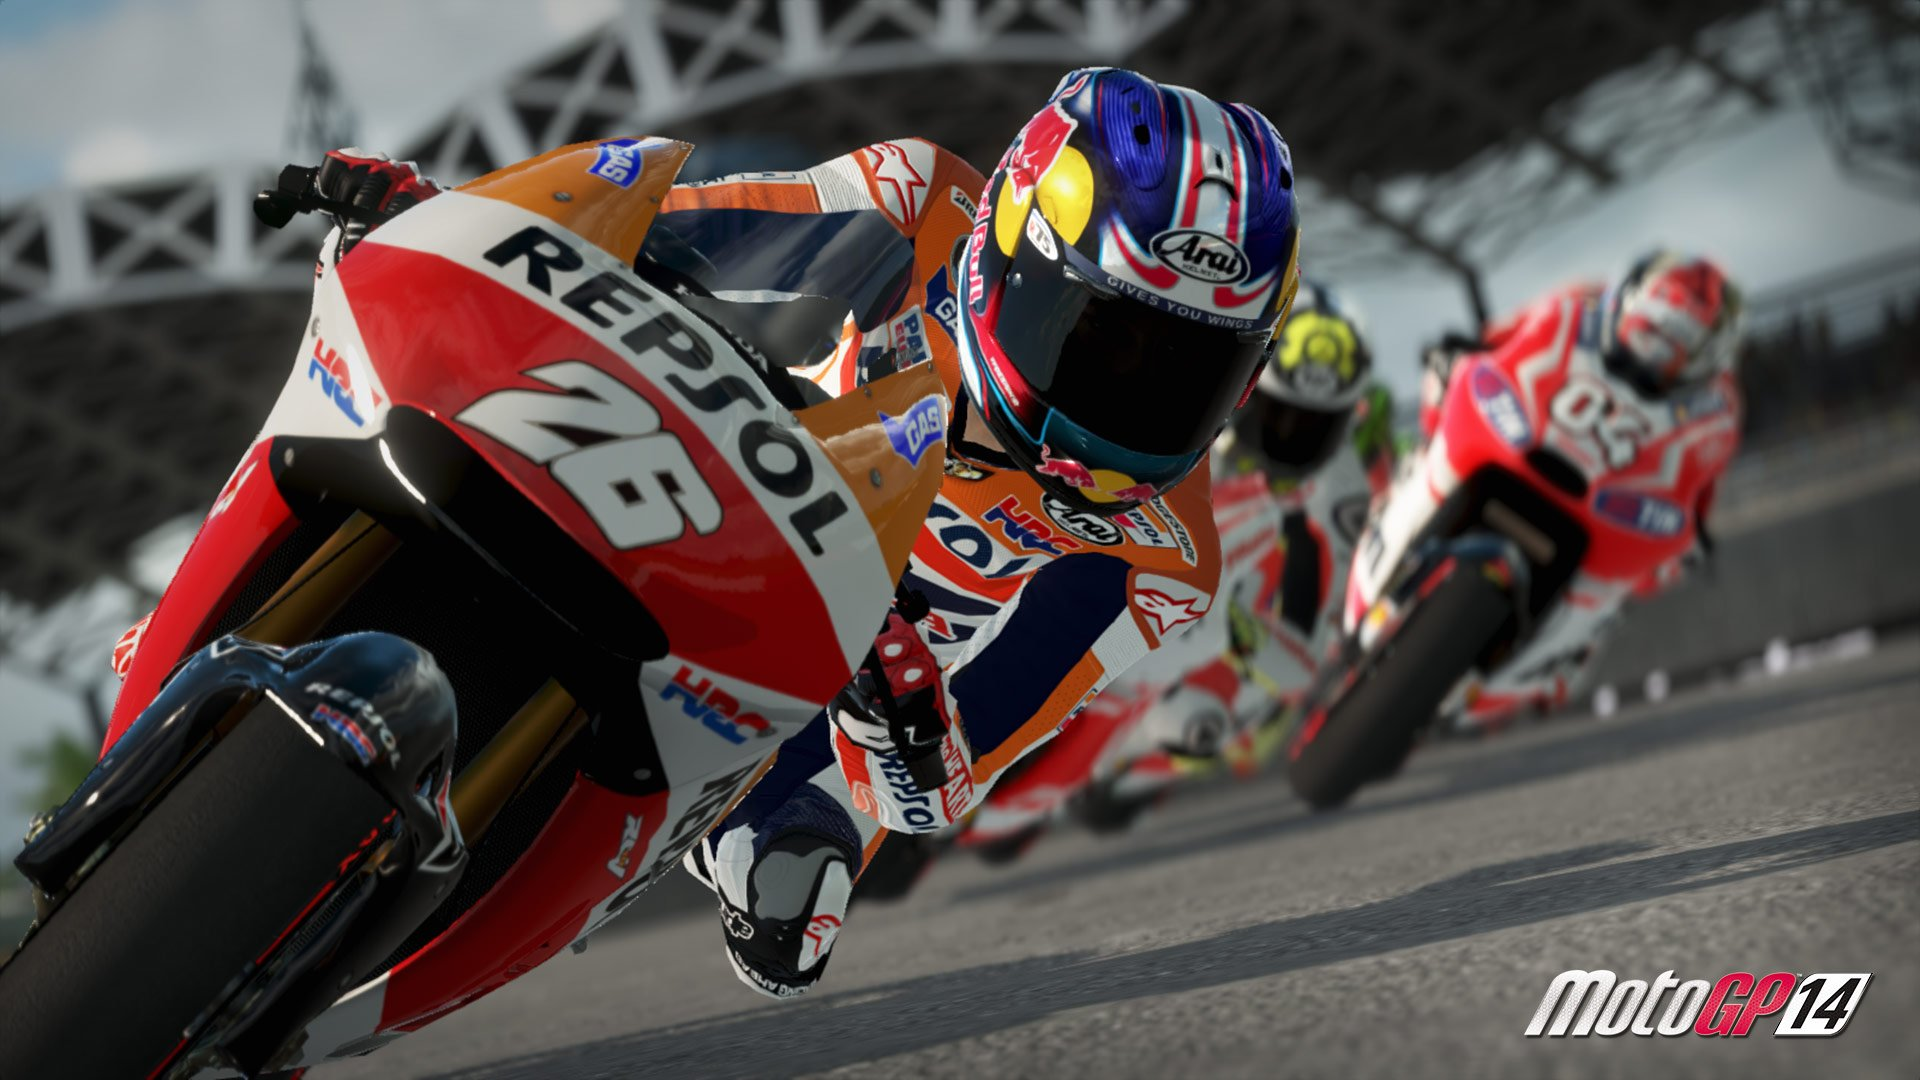 Moto GP 2014 - Inside Sim Racing